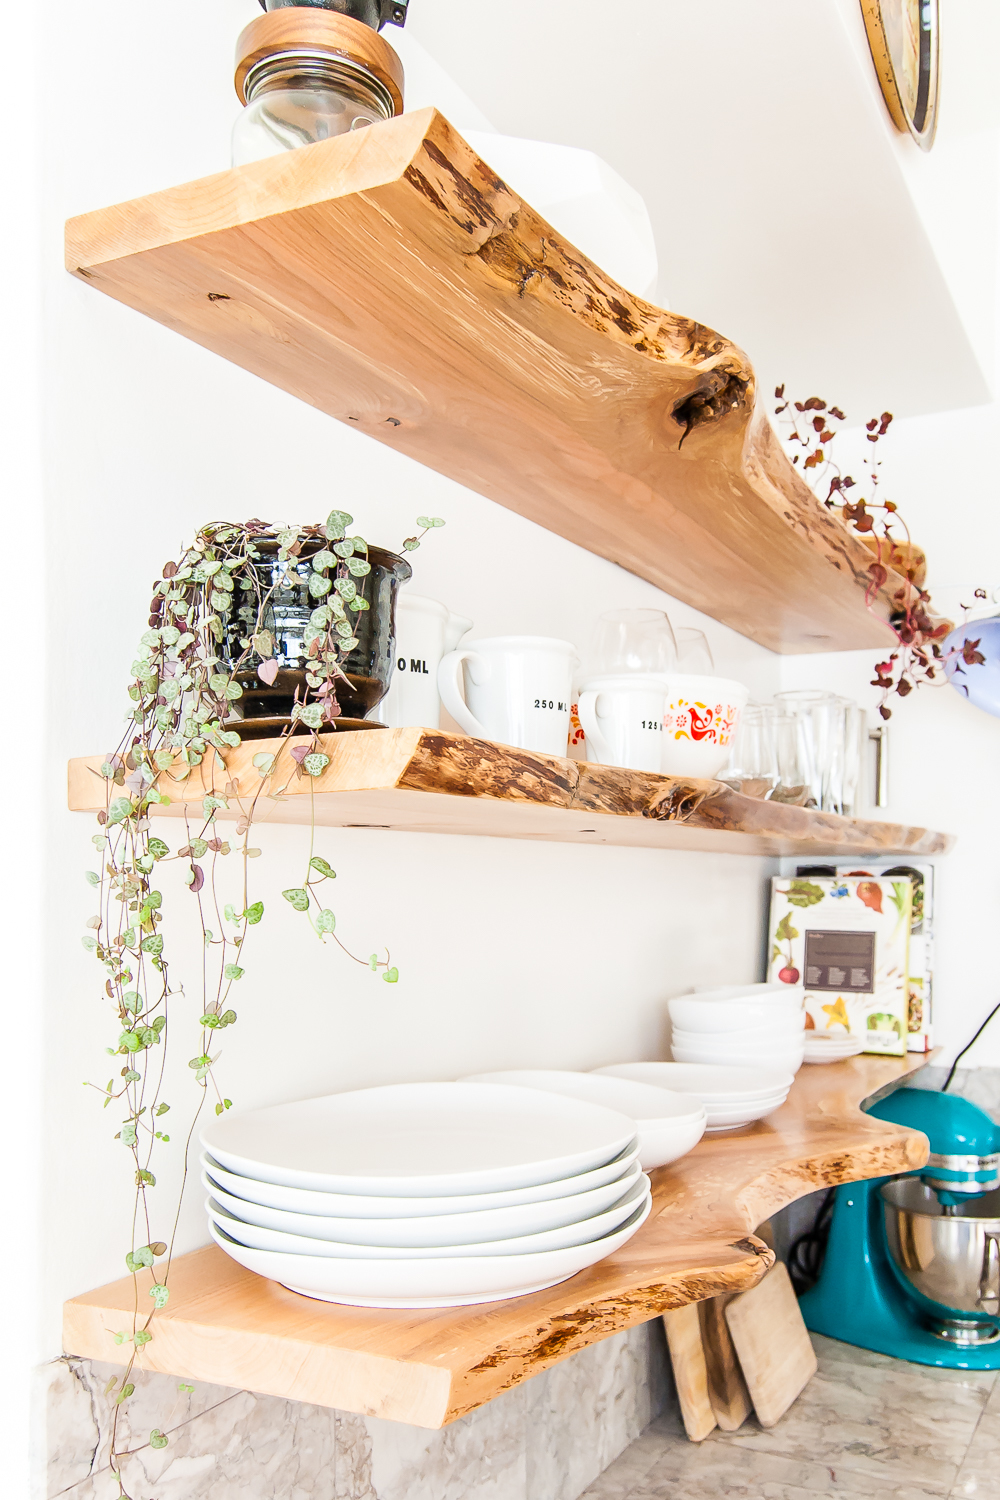 Want to build your own DYI floating shelves? Here are 7 different tutorials that show you how.